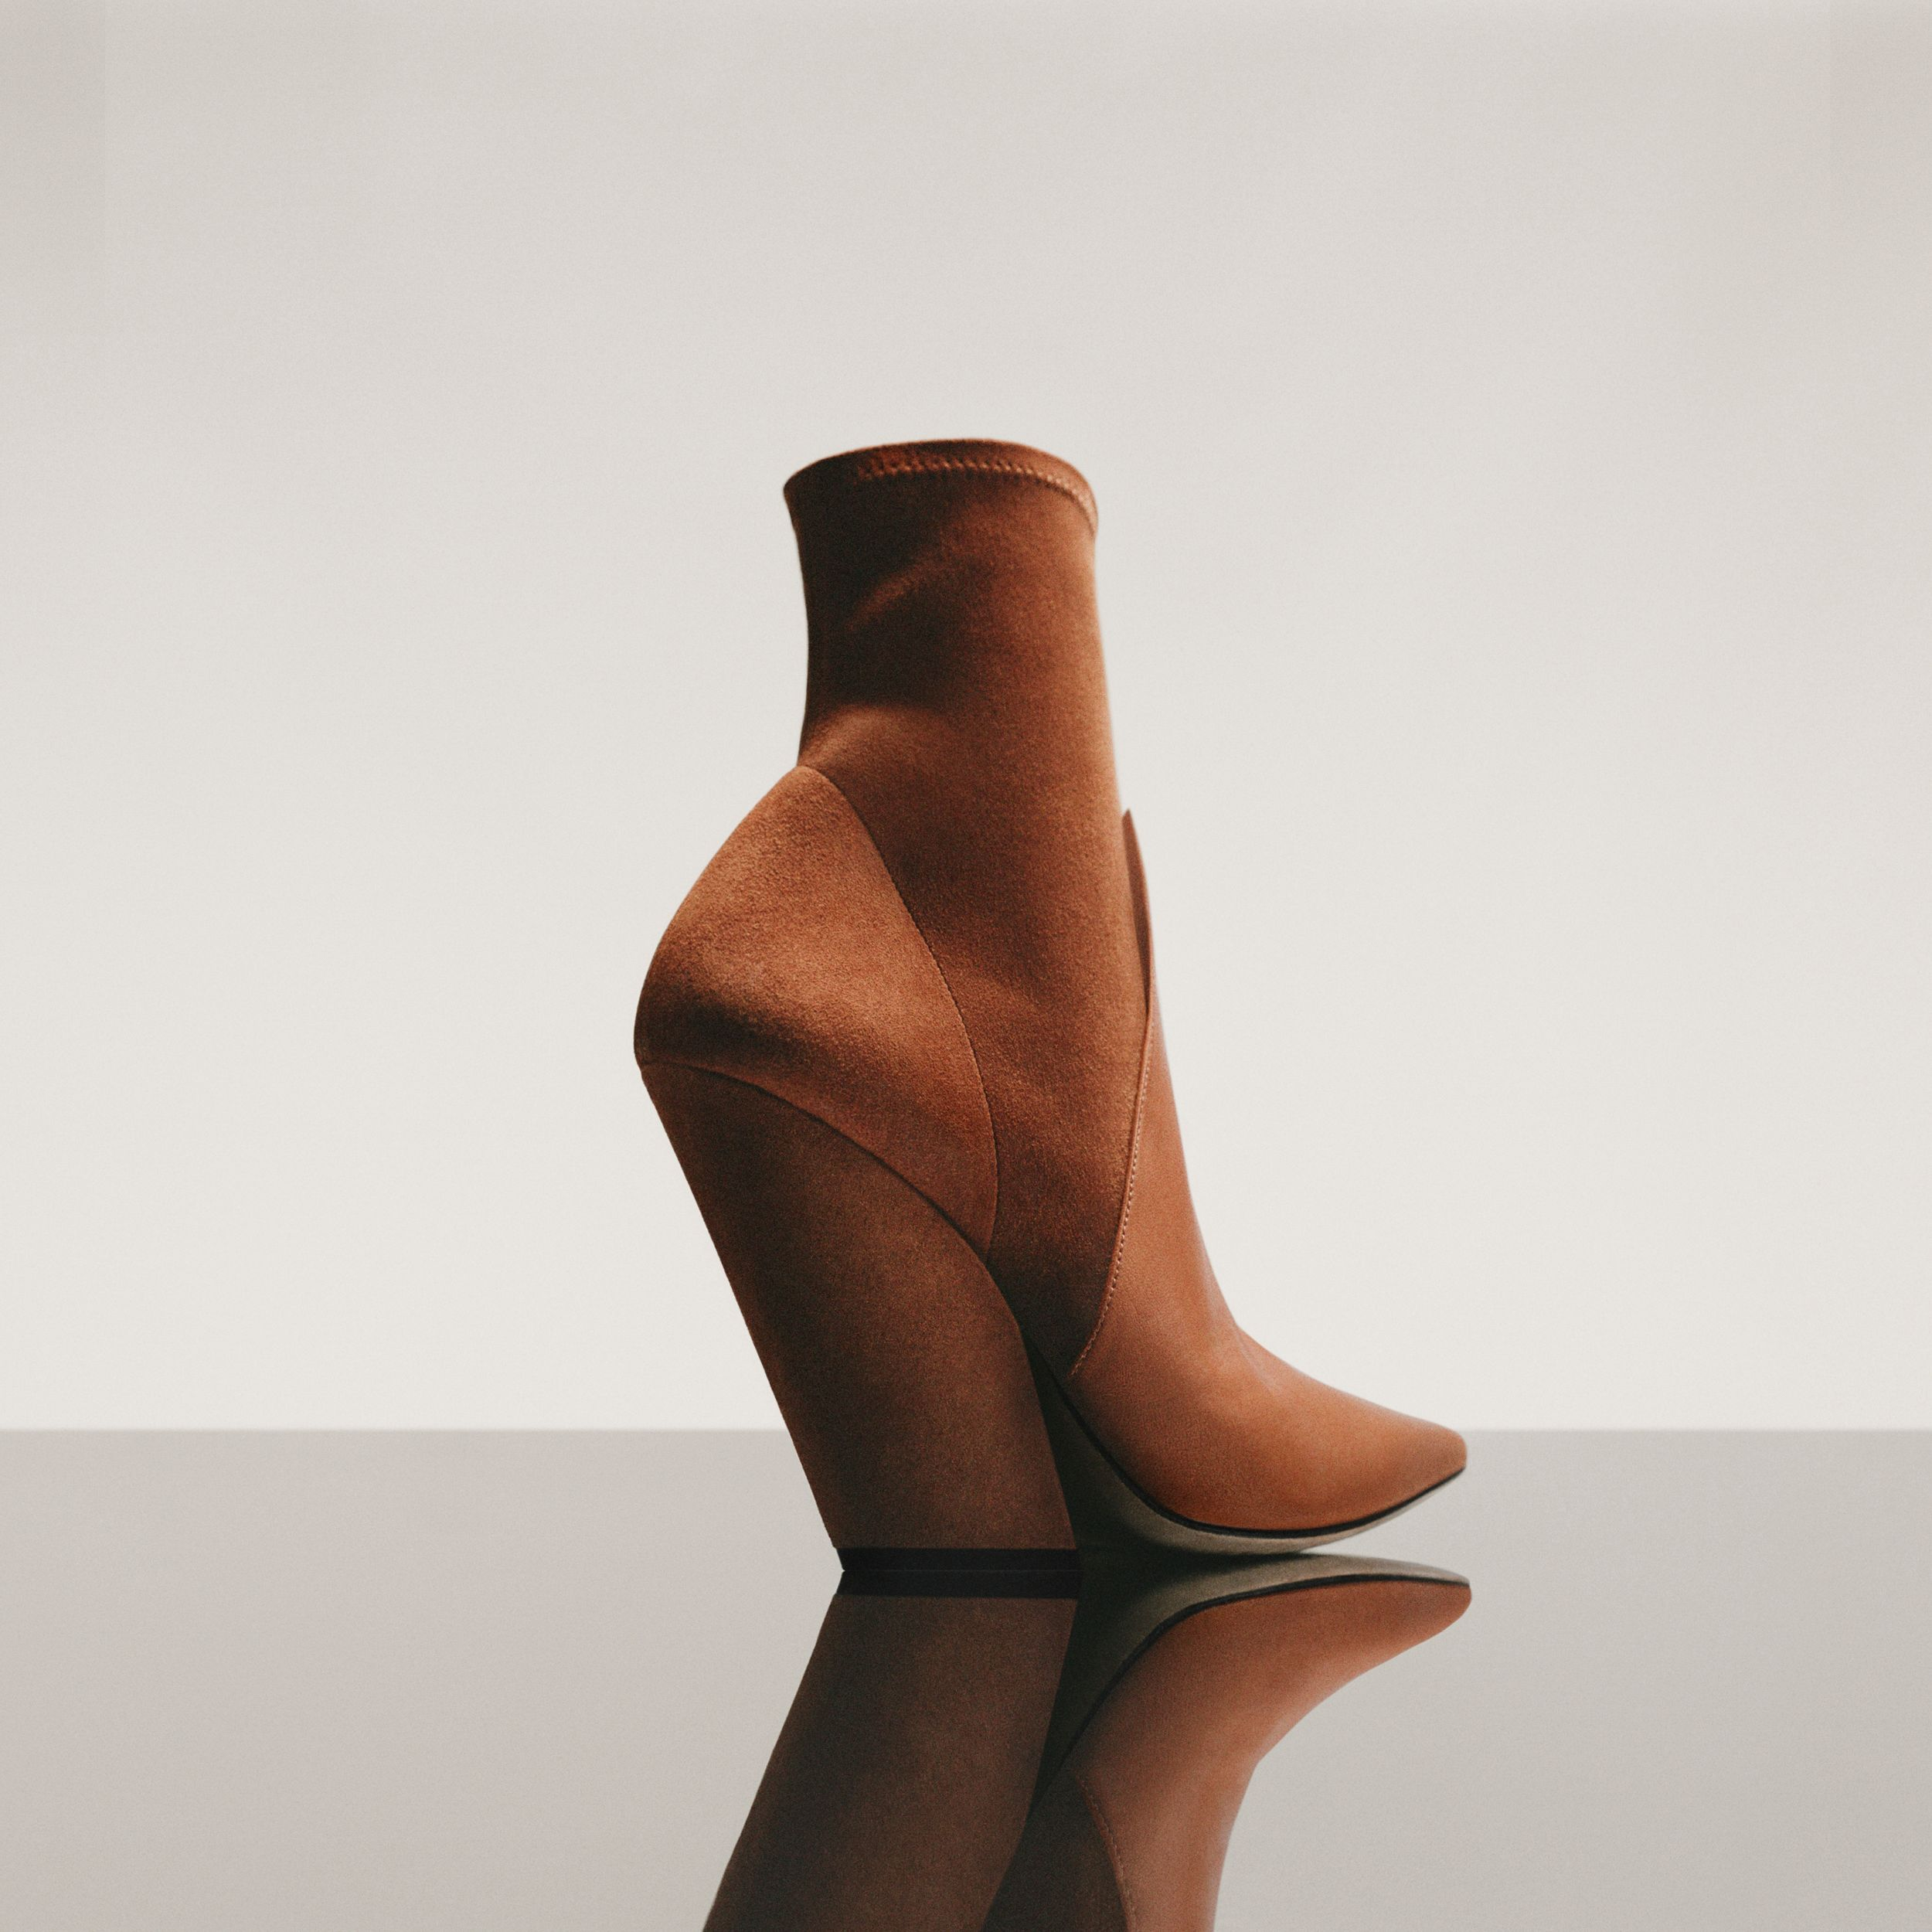 Panelled Suede and Lambskin Ankle Boots in Nutmeg - Women | Burberry Hong Kong S.A.R. - 2